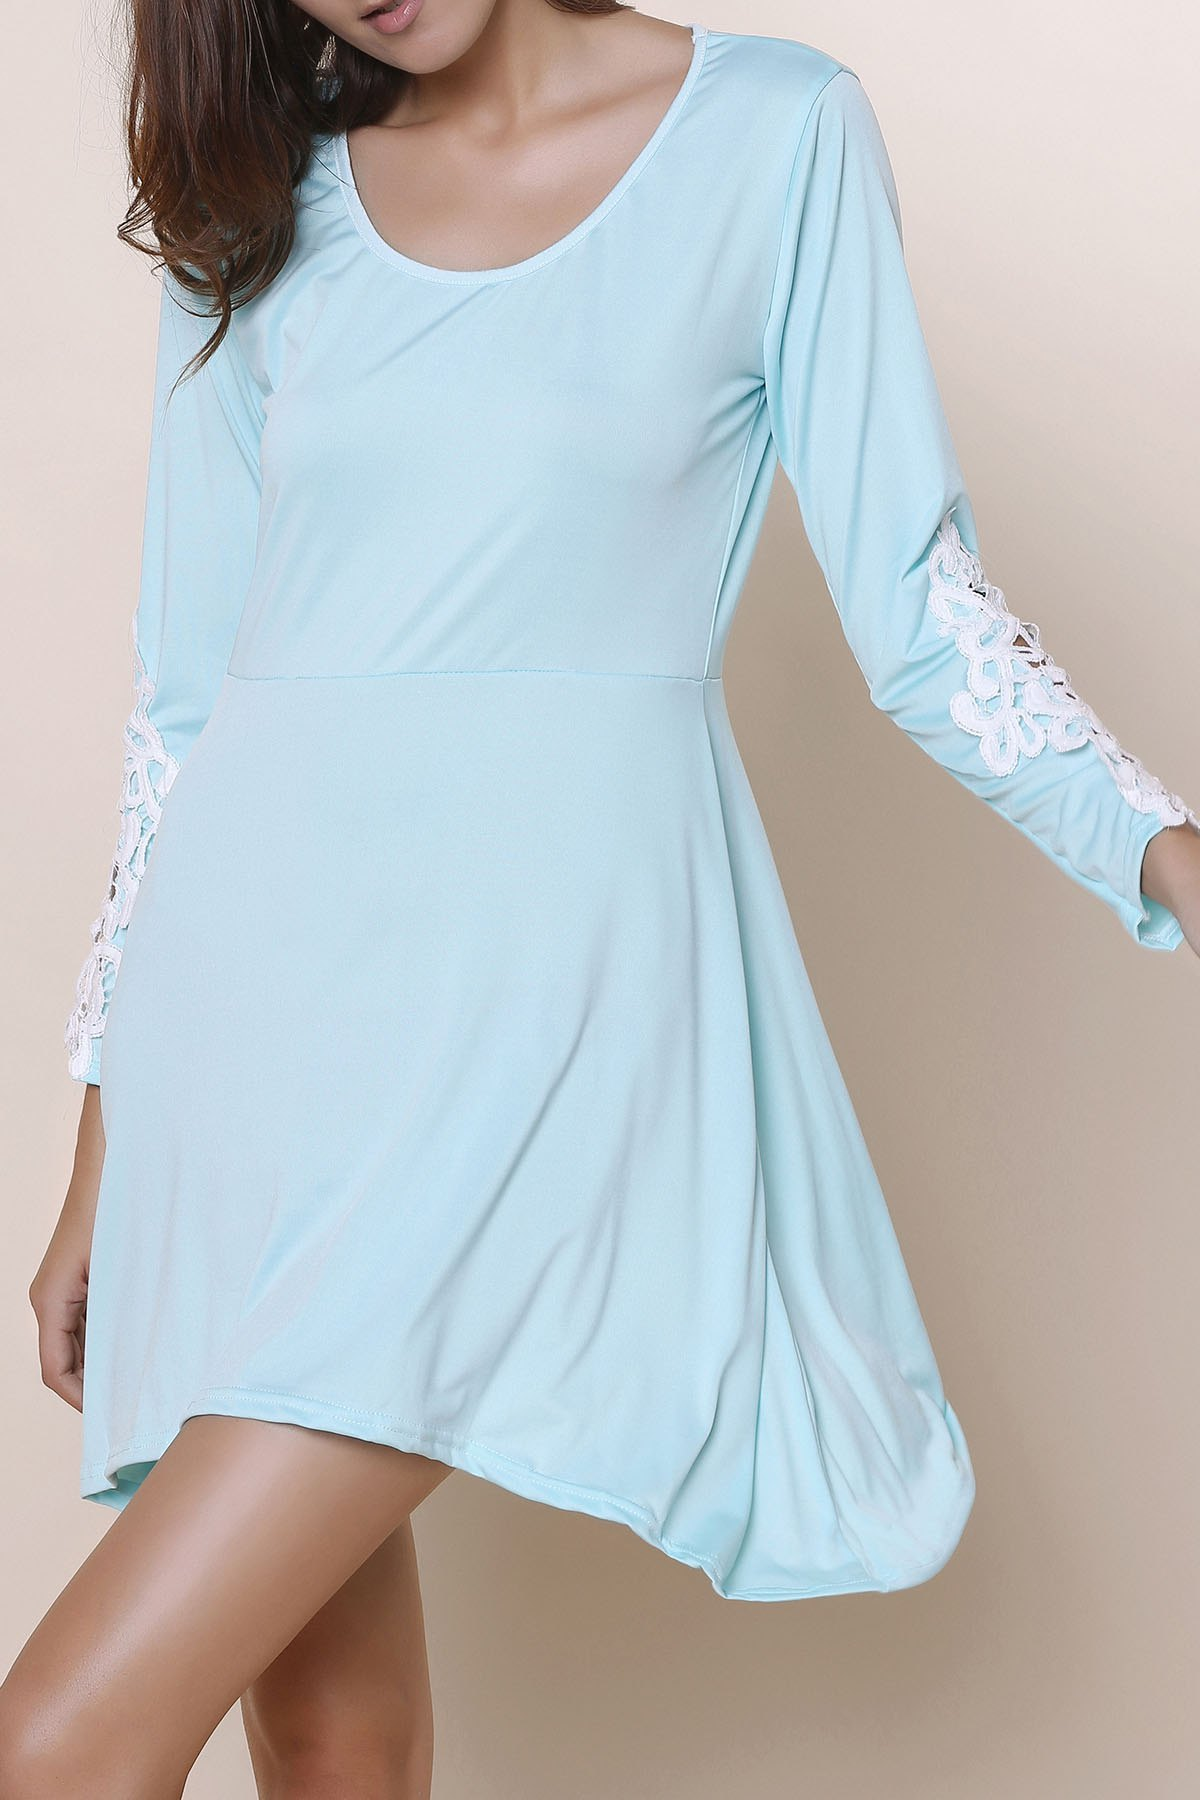 Stylish Scoop Neck Long Sleeve Asymmetrical Hollow Out Women's Dress - LIGHT BLUE XL